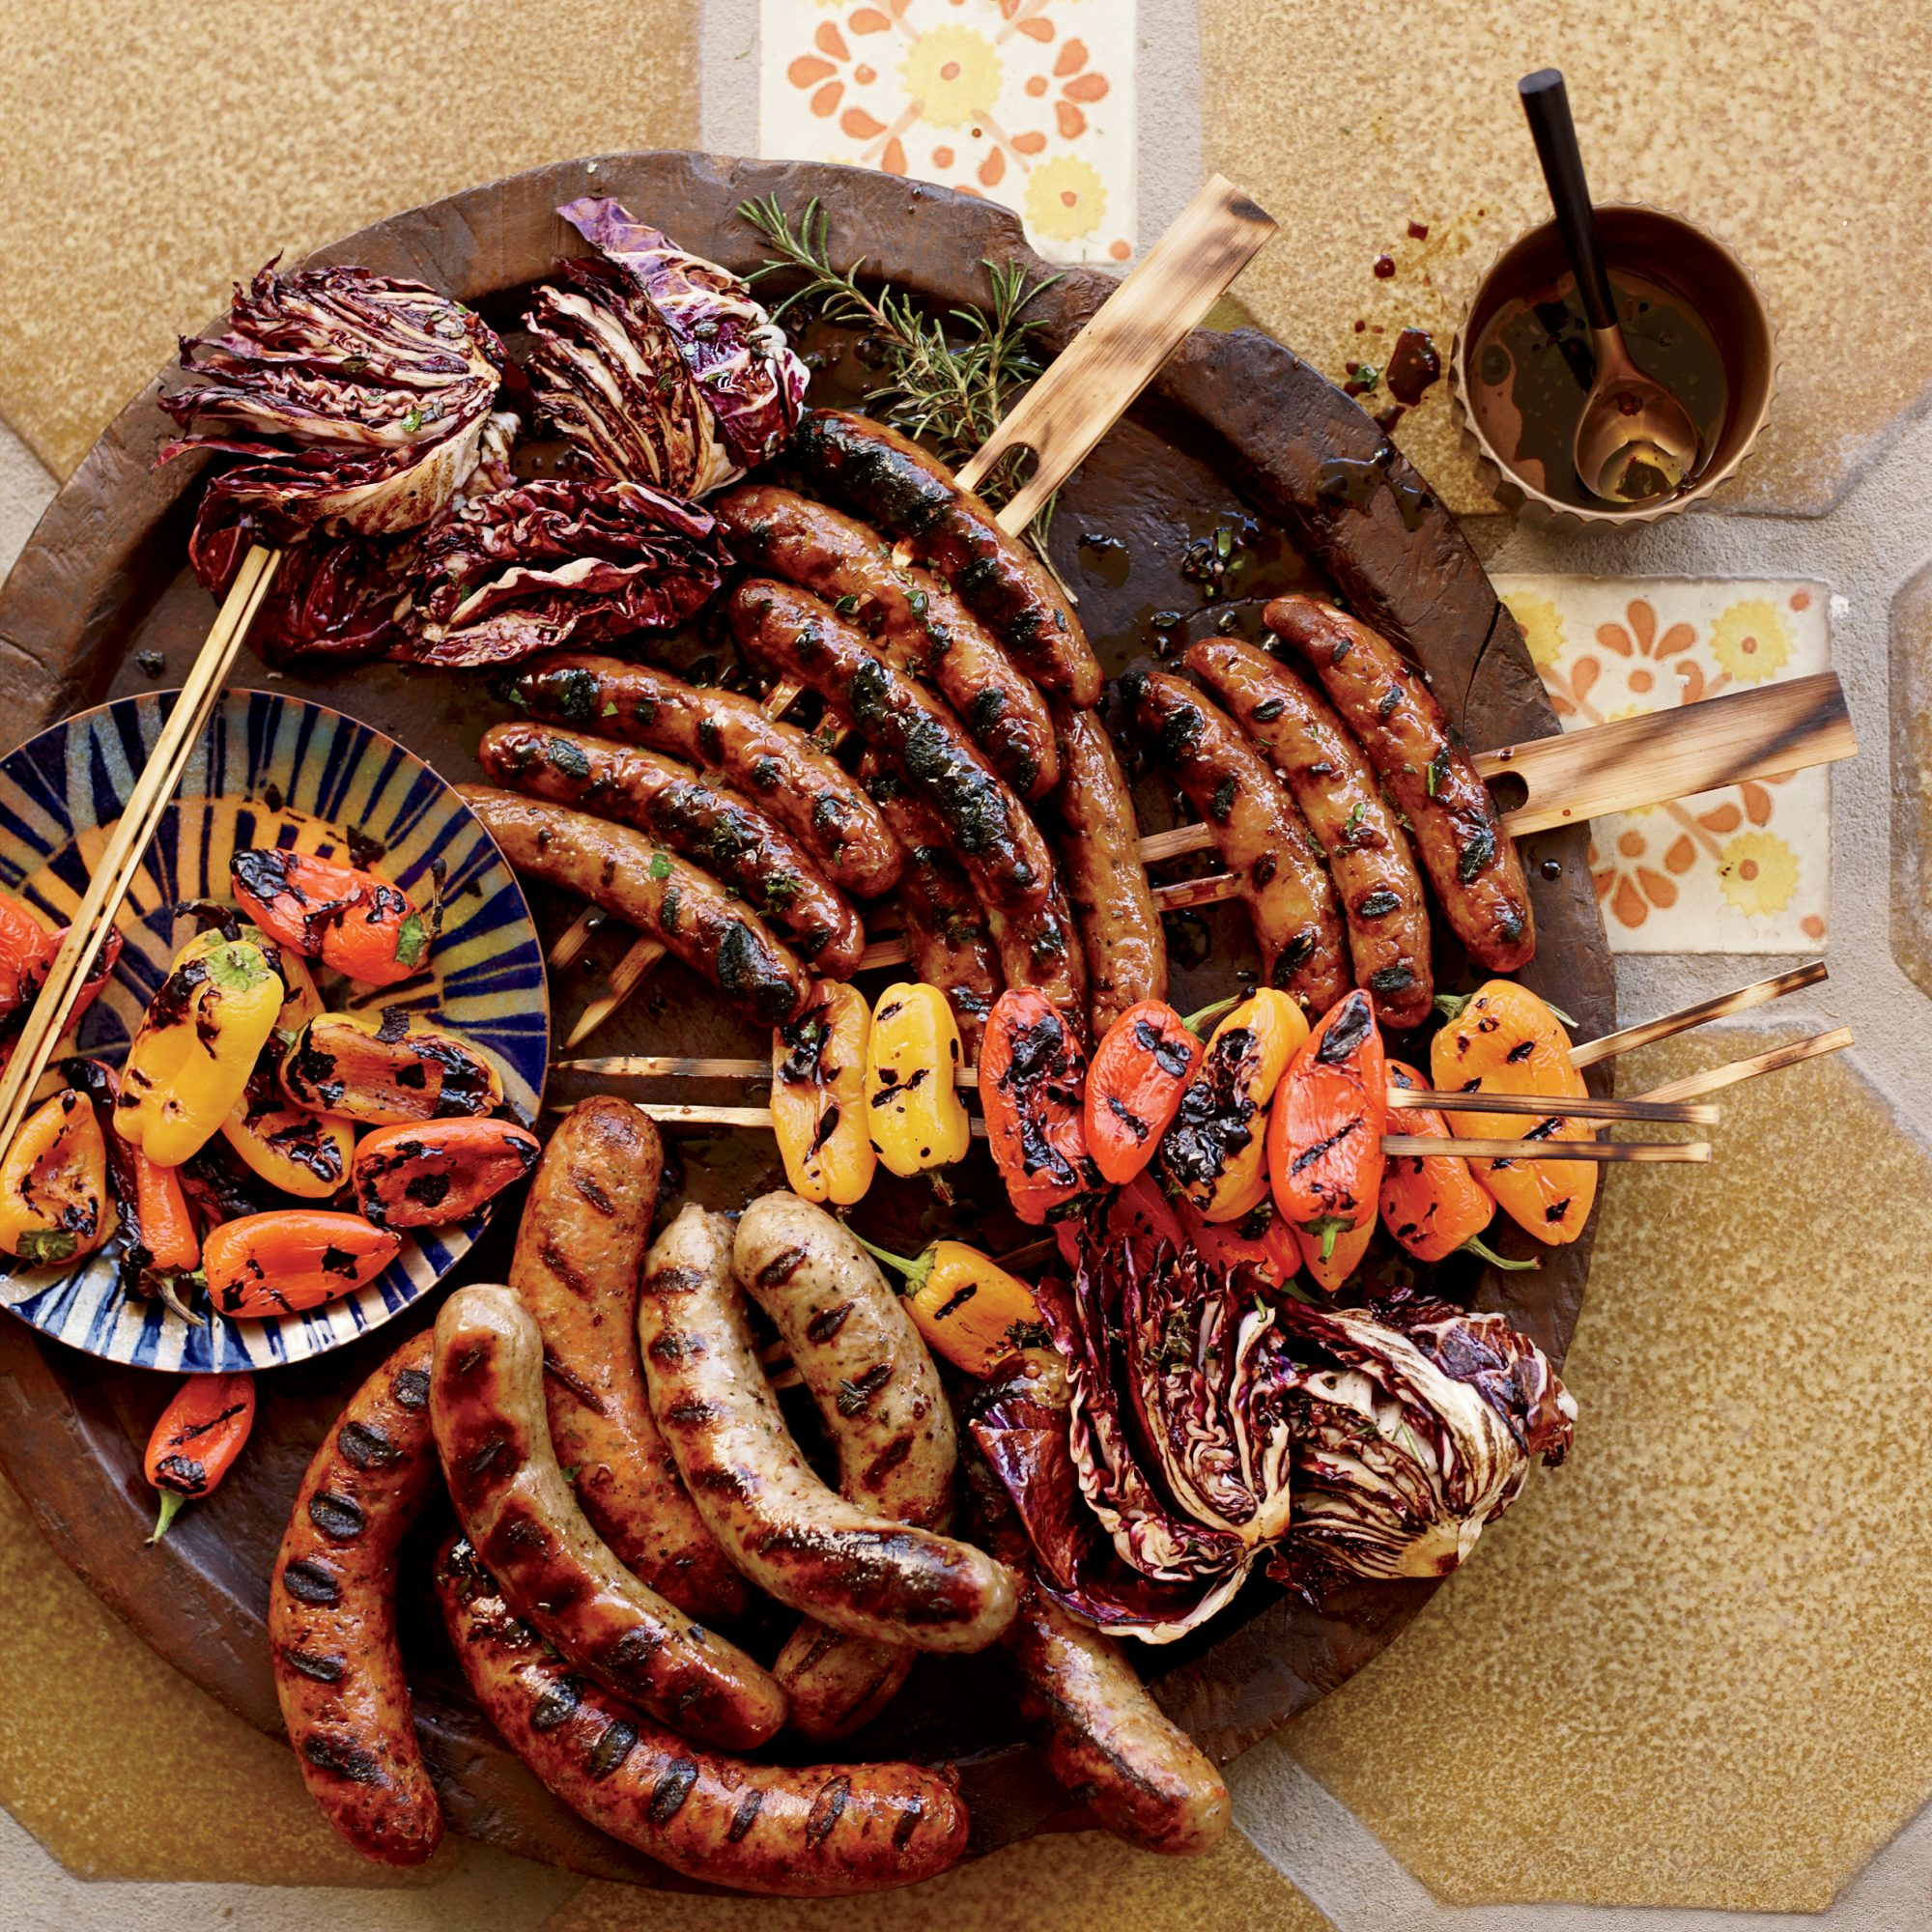 Sausage Mixed Grill with Balsamic Vinaigrette